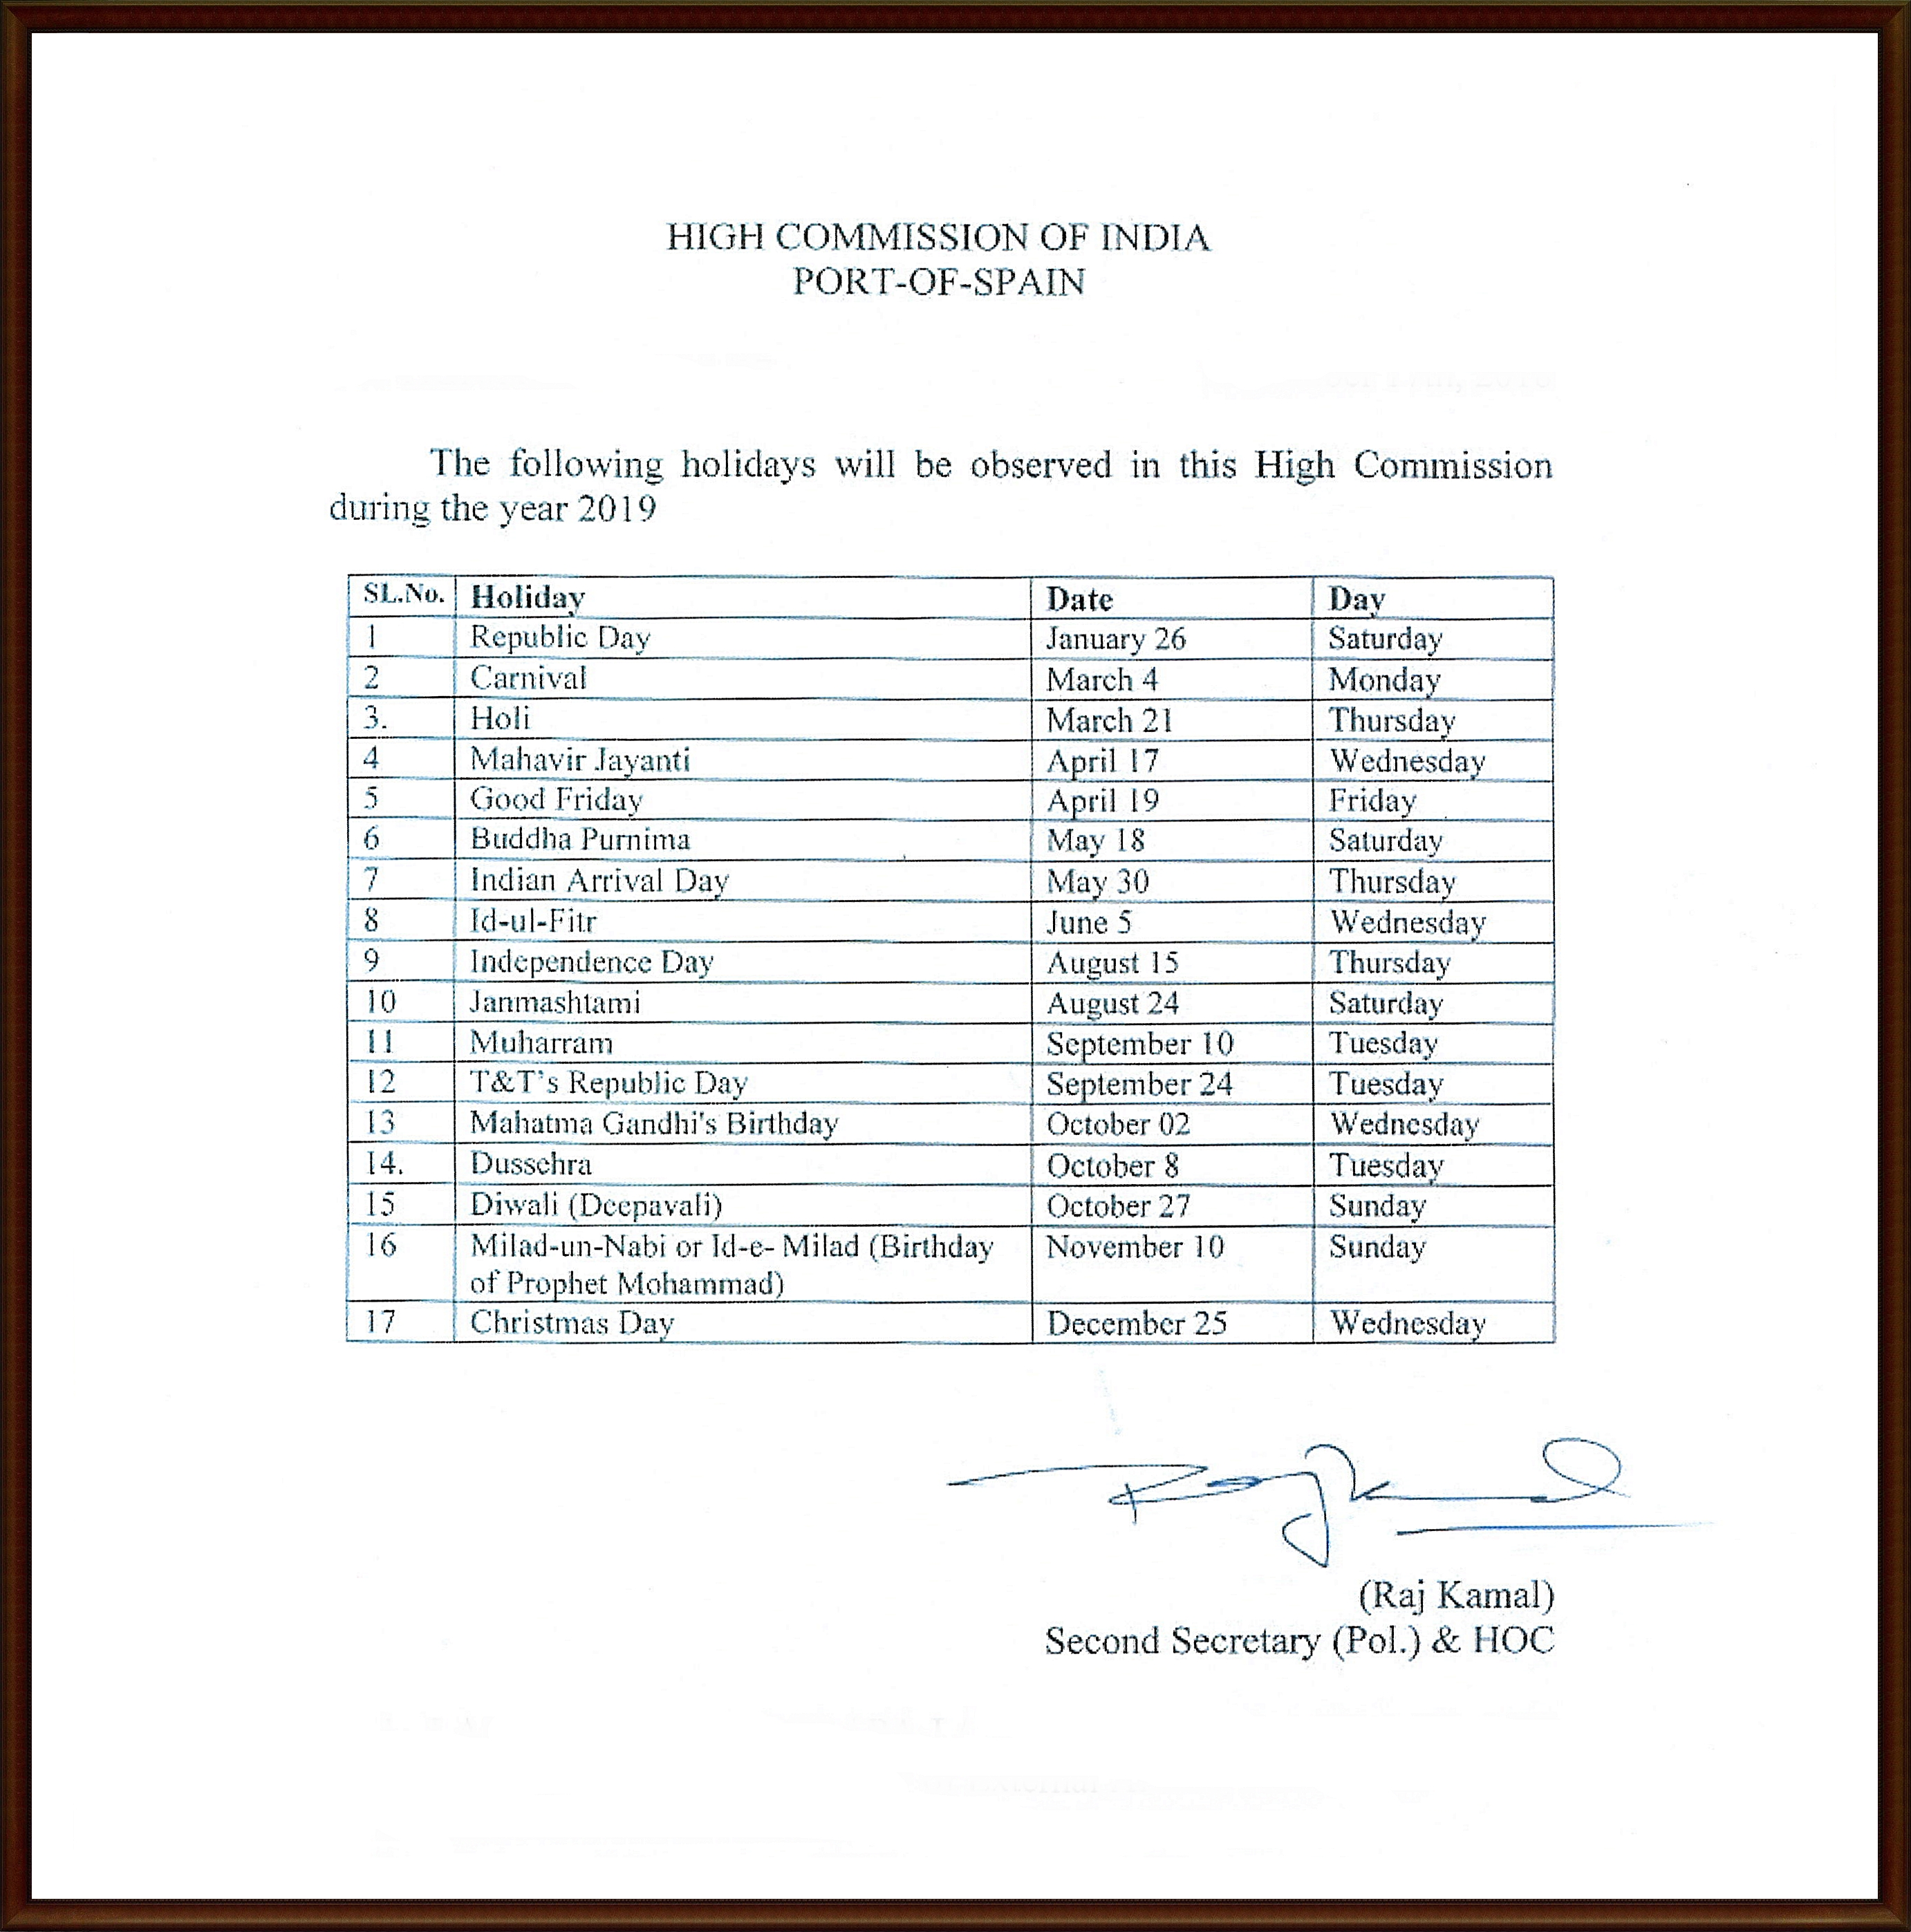 High Commission of India, Port of Spain, Trinidad and Tobago : List